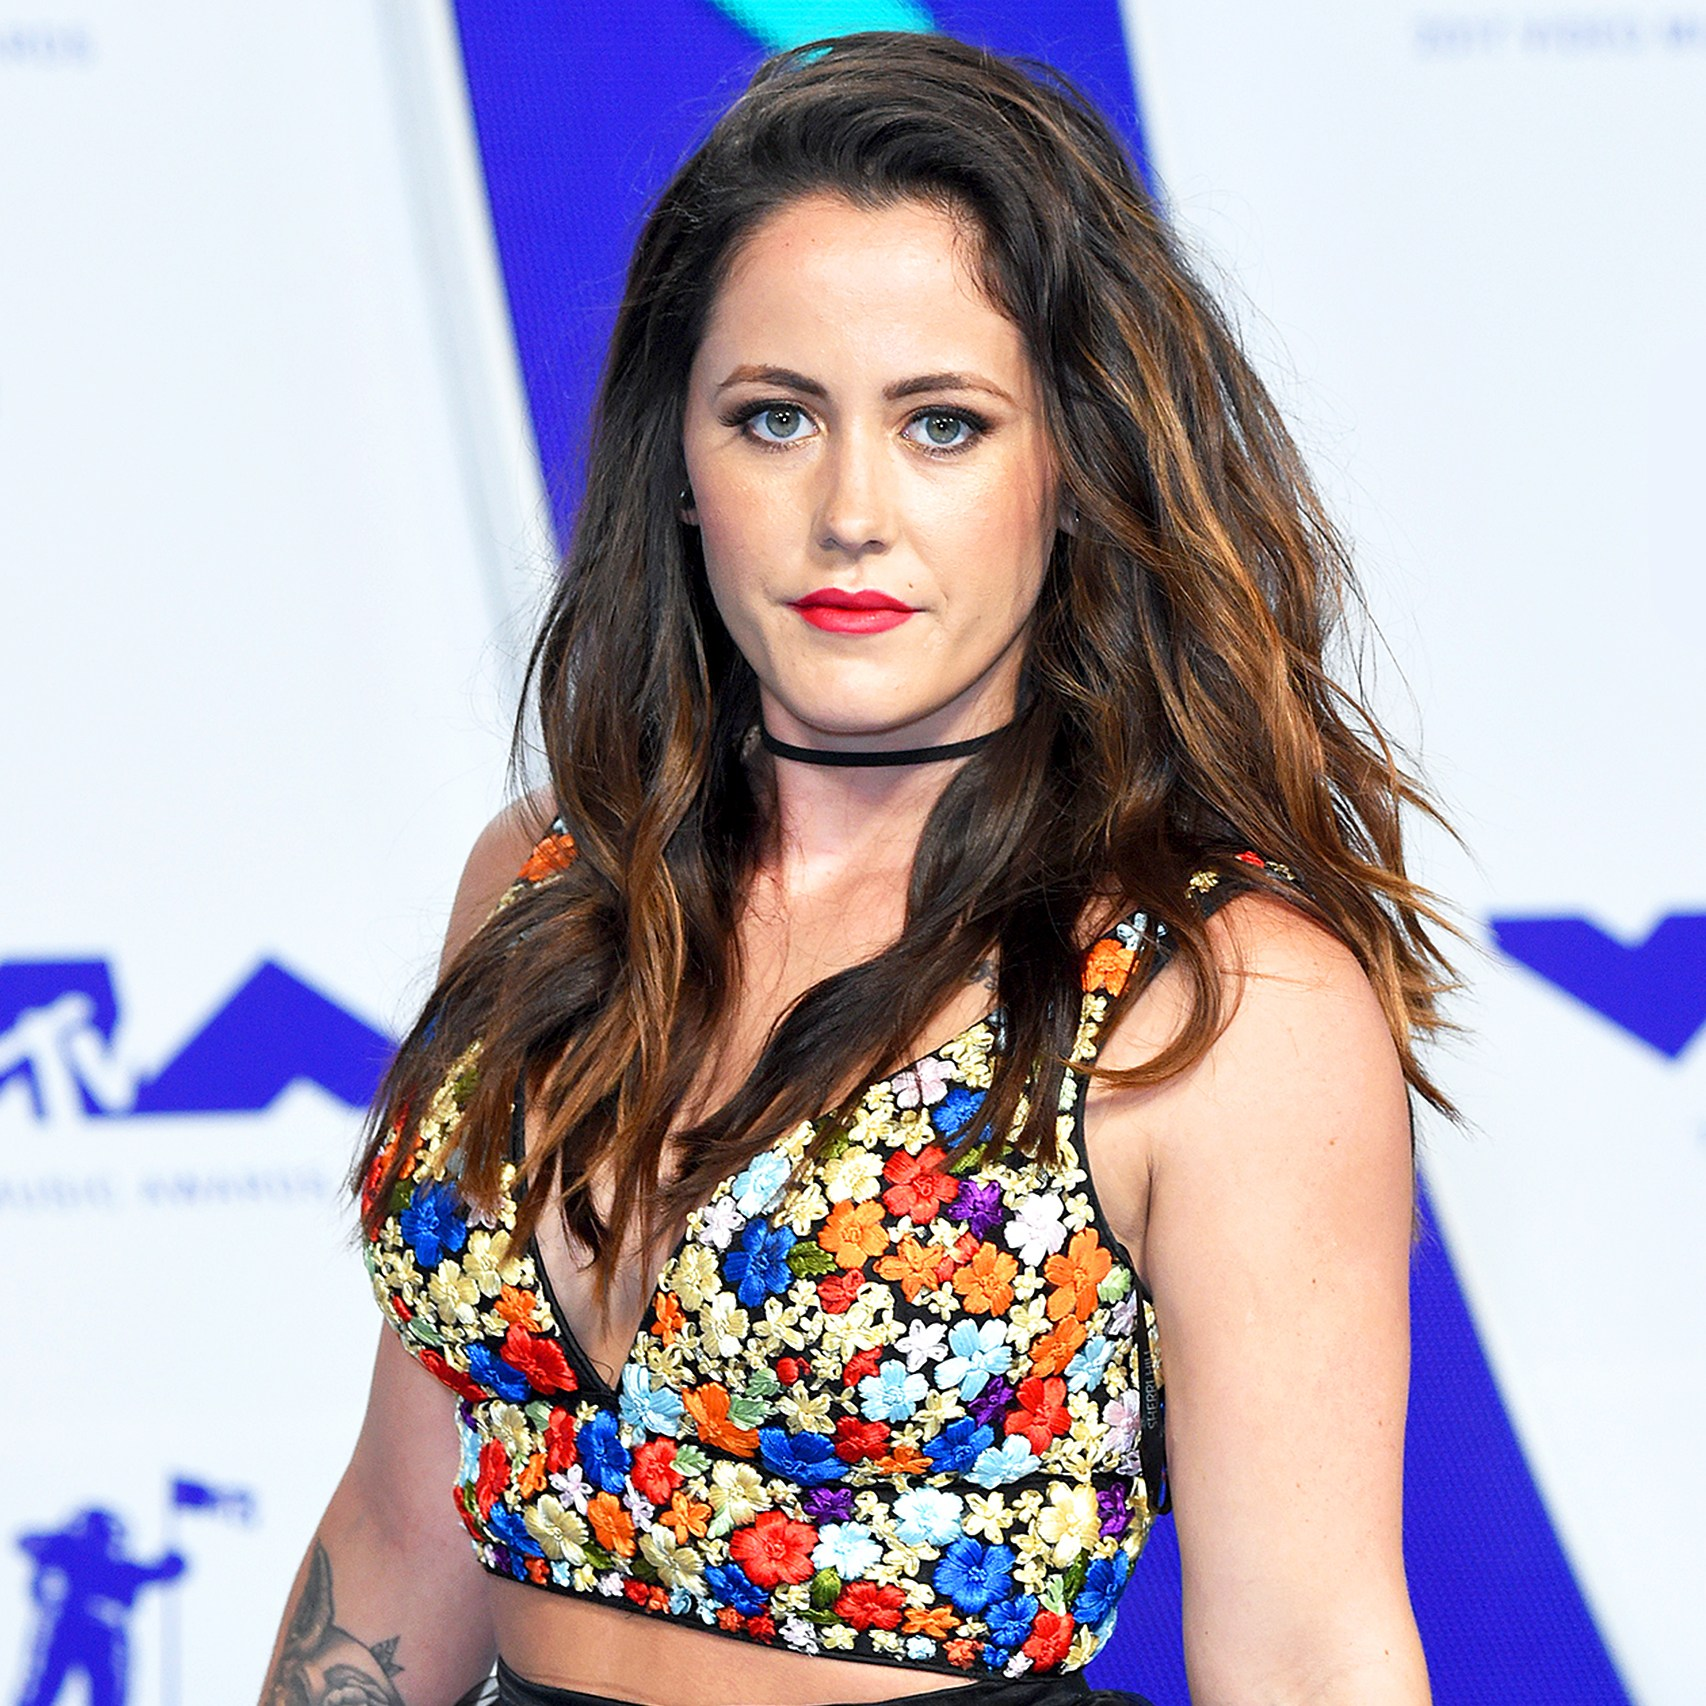 Jenelle Evans attends the 2017 MTV Video Music Awards at The Forum on August 27, 2017 in Inglewood, California.